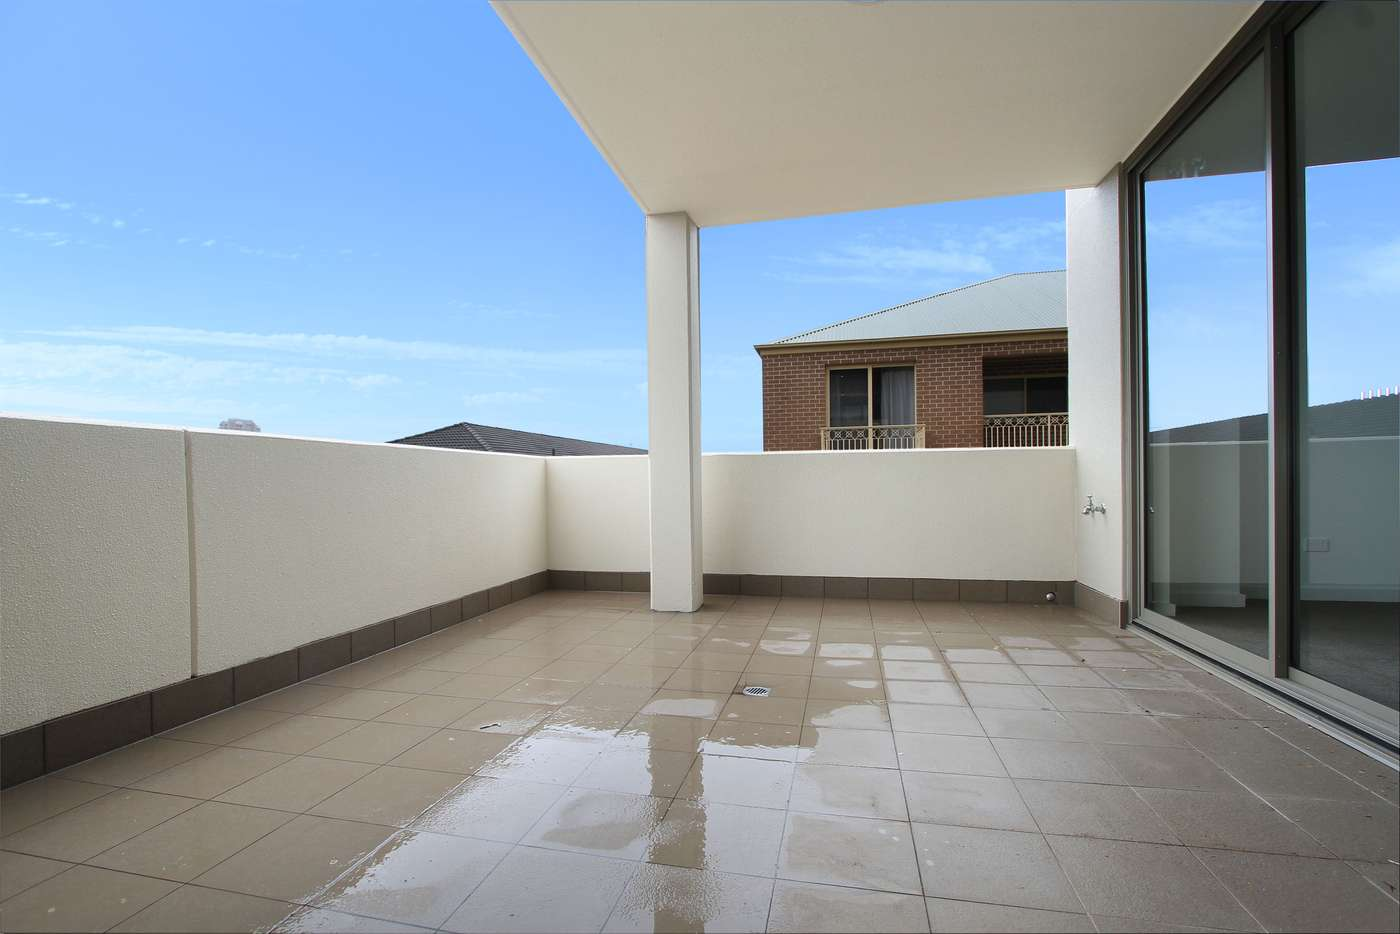 Seventh view of Homely apartment listing, 11/88 Smith Street, Wollongong NSW 2500